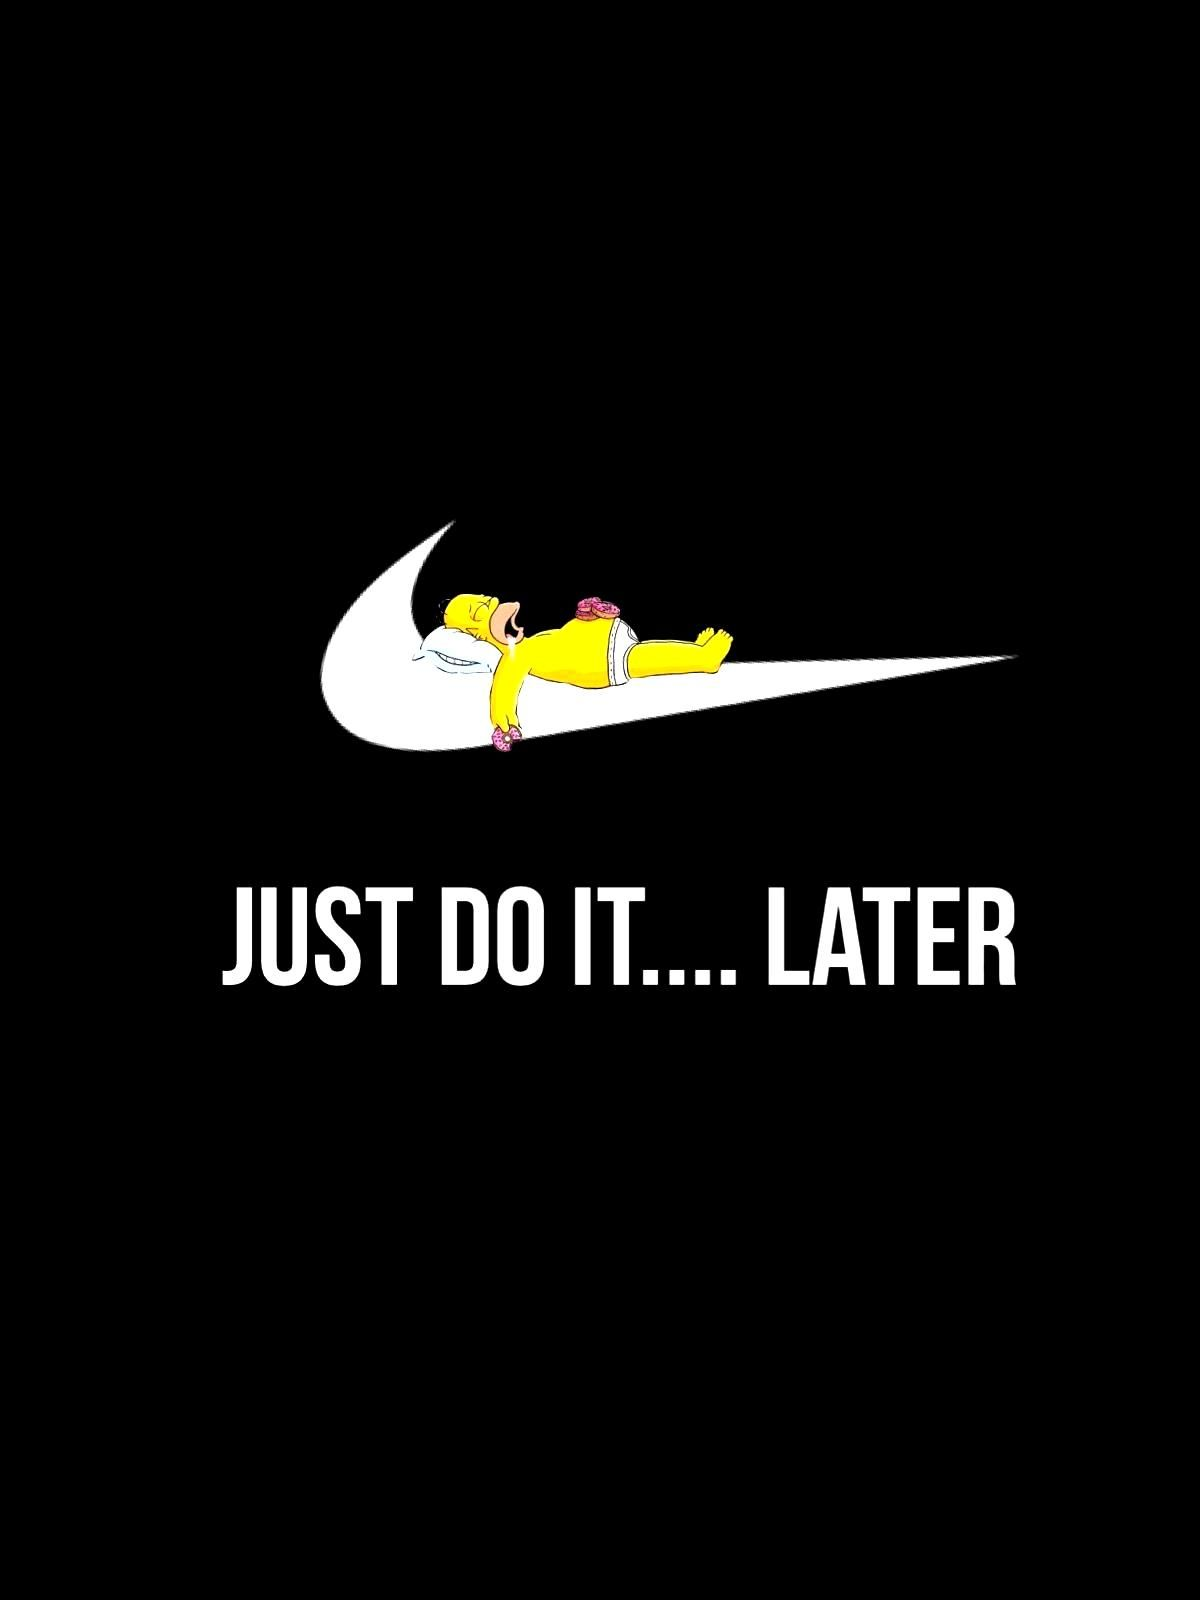 Simpson Just Itlater Simpson Homer Just Do Homer Simpson Just Do It Later Homer Simpson J Funny Phone Wallpaper Funny Iphone Wallpaper Funny Wallpaper